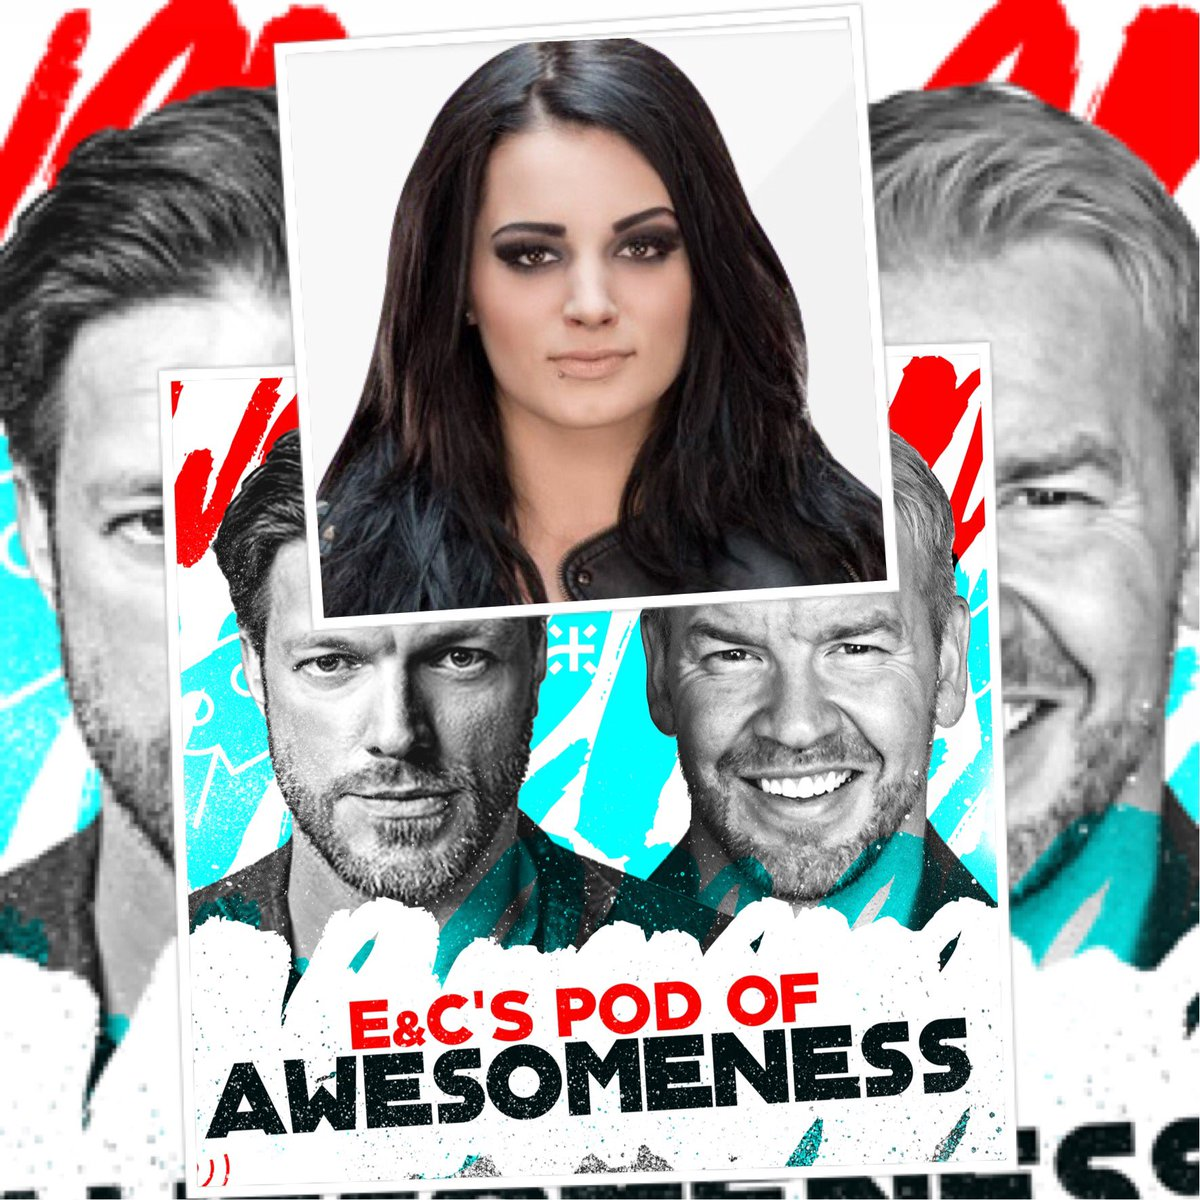 Now! @EandCPod @RealPaigeWWE talks her injury, retirement, Smackdown GM, growing up in the biz, having a movie made about her life, saving dogs & joining our pod full time w/ @ReneeYoungWWE? + Flip Sunset returns to the territory to challenge Paul Smackage itunes.apple.com/us/podcast/e-c…